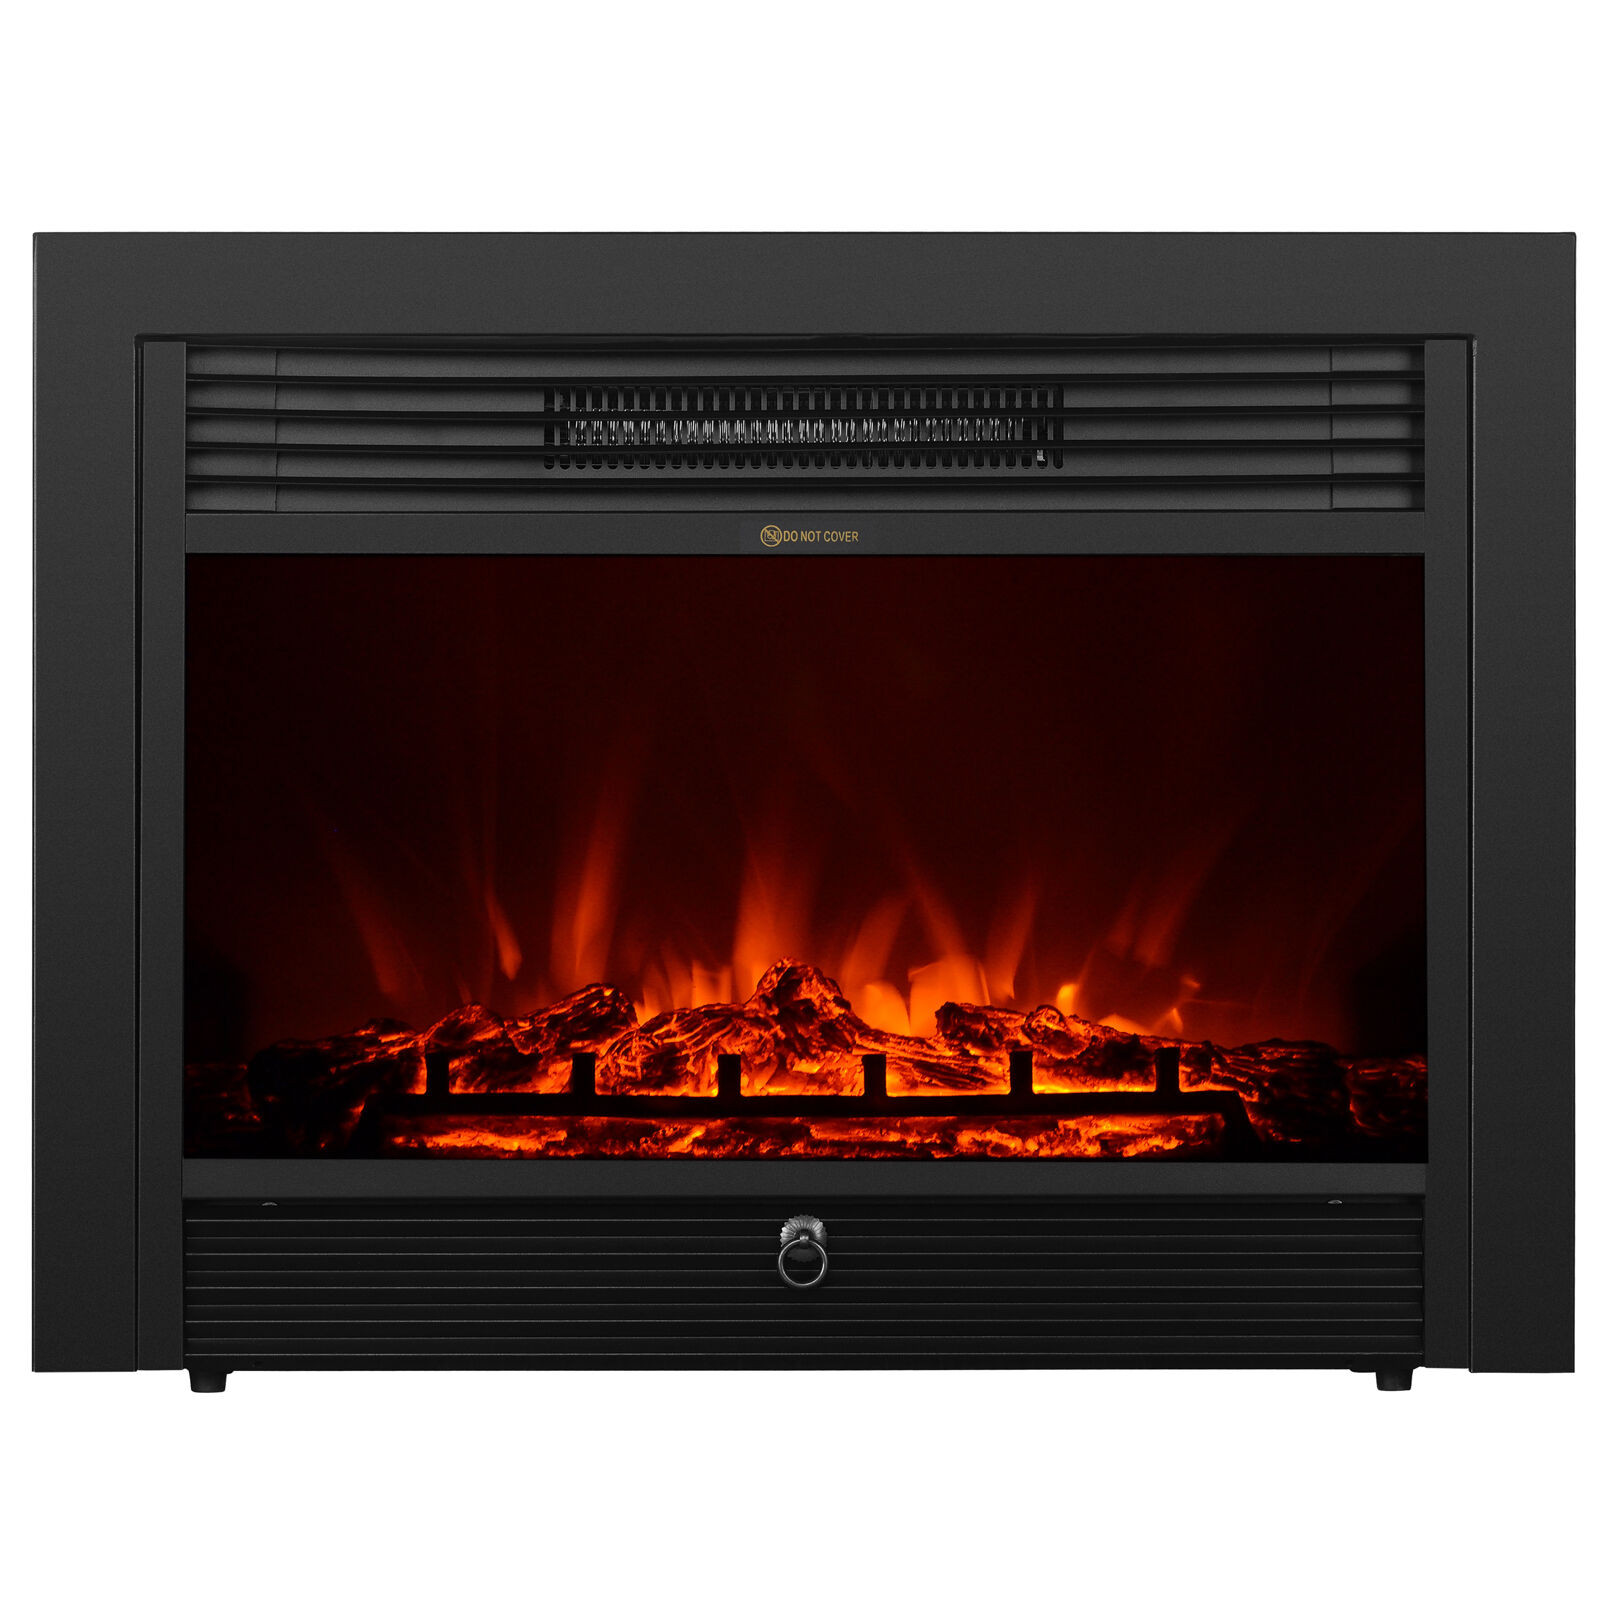 """Best ideas about Electric Fireplace Insert With Heater . Save or Pin Embedded 28 5"""" Electric Fireplace Insert Heater w Remote Now."""